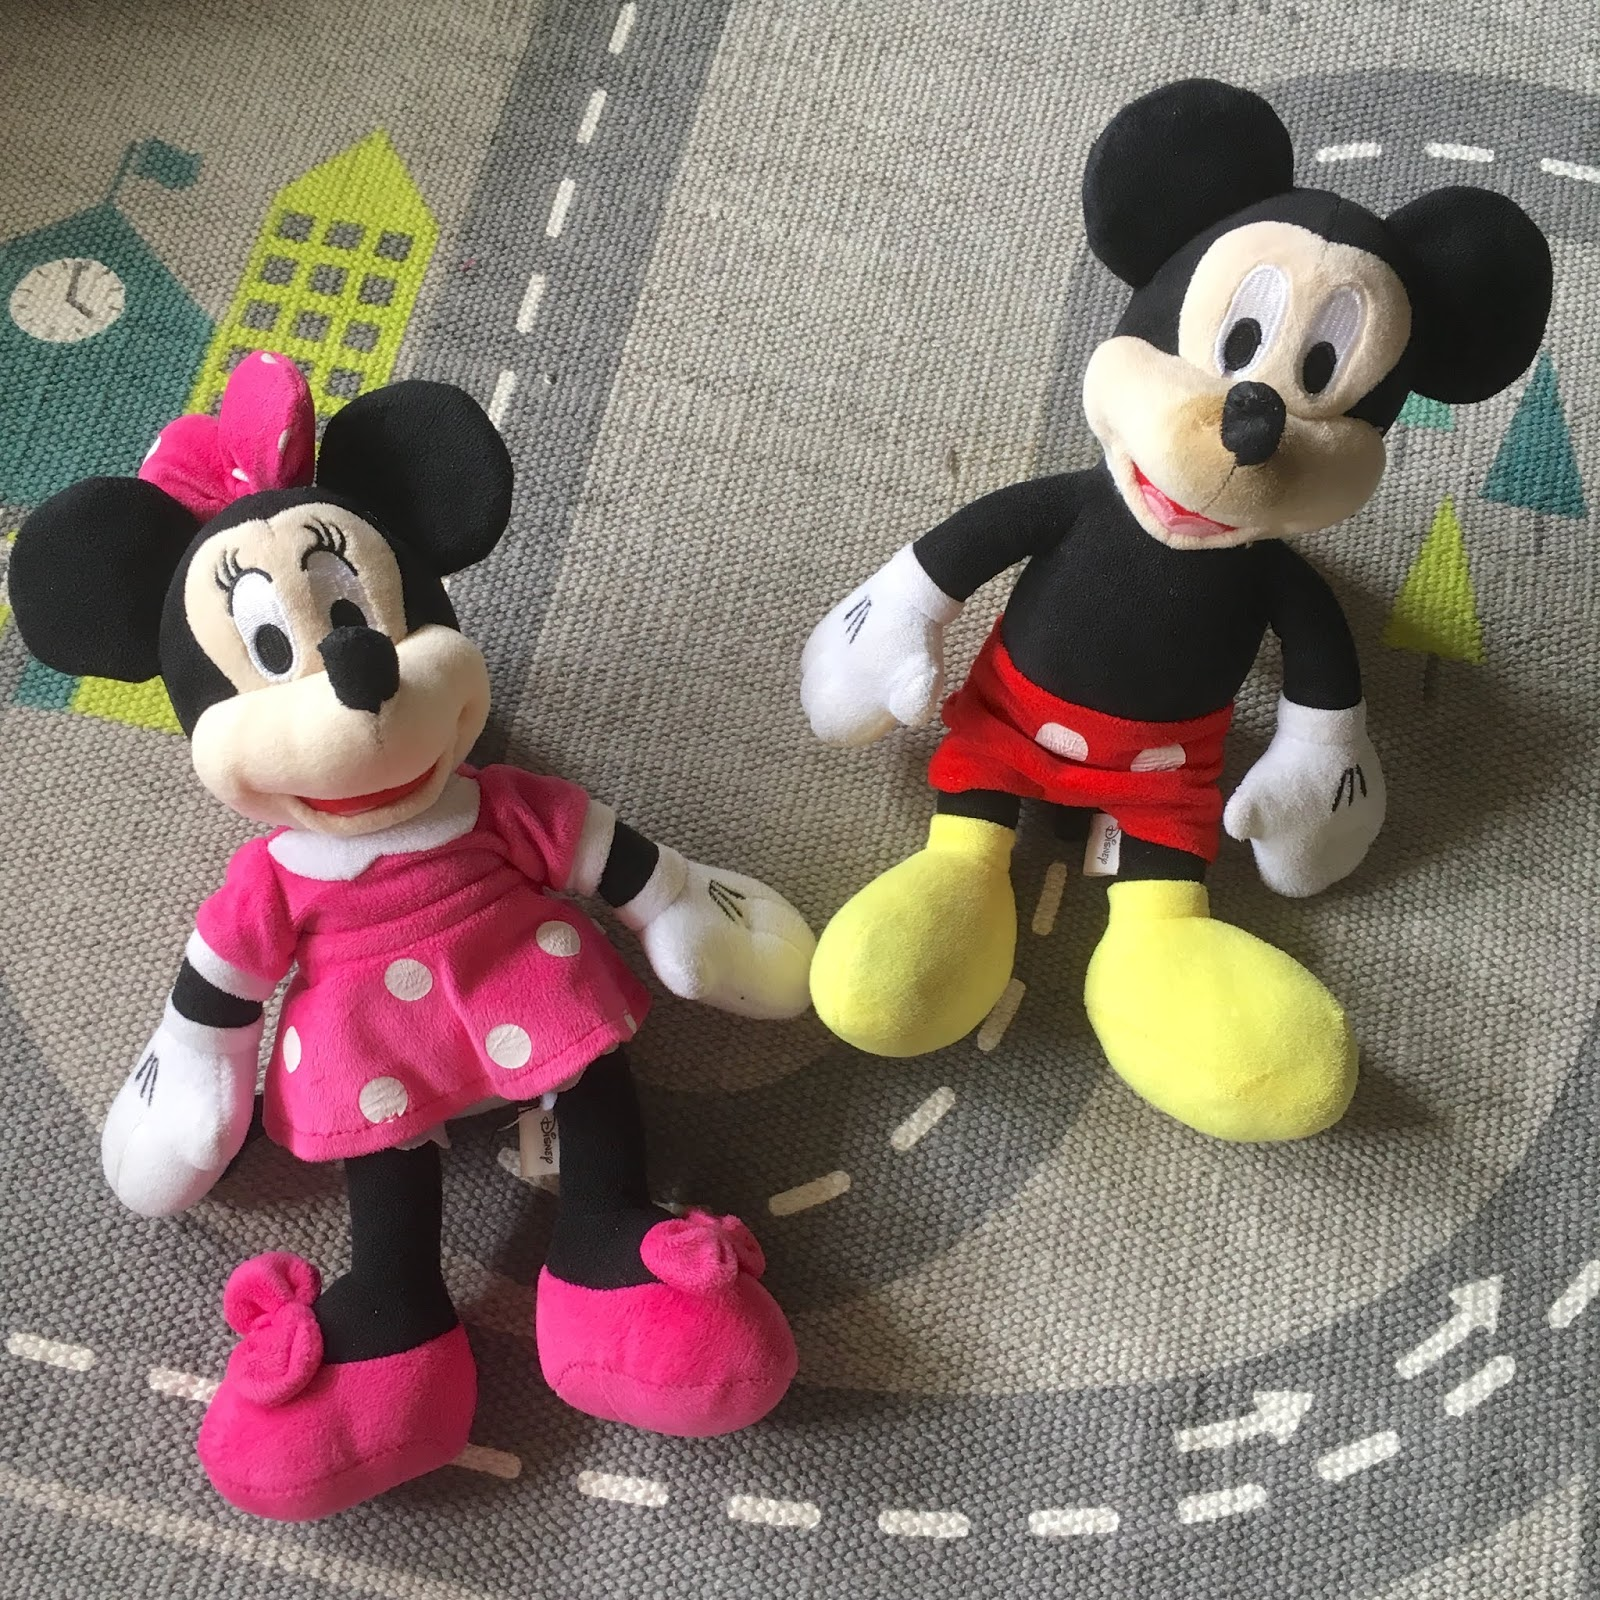 mickey mouse minnie mouse stuffed toys